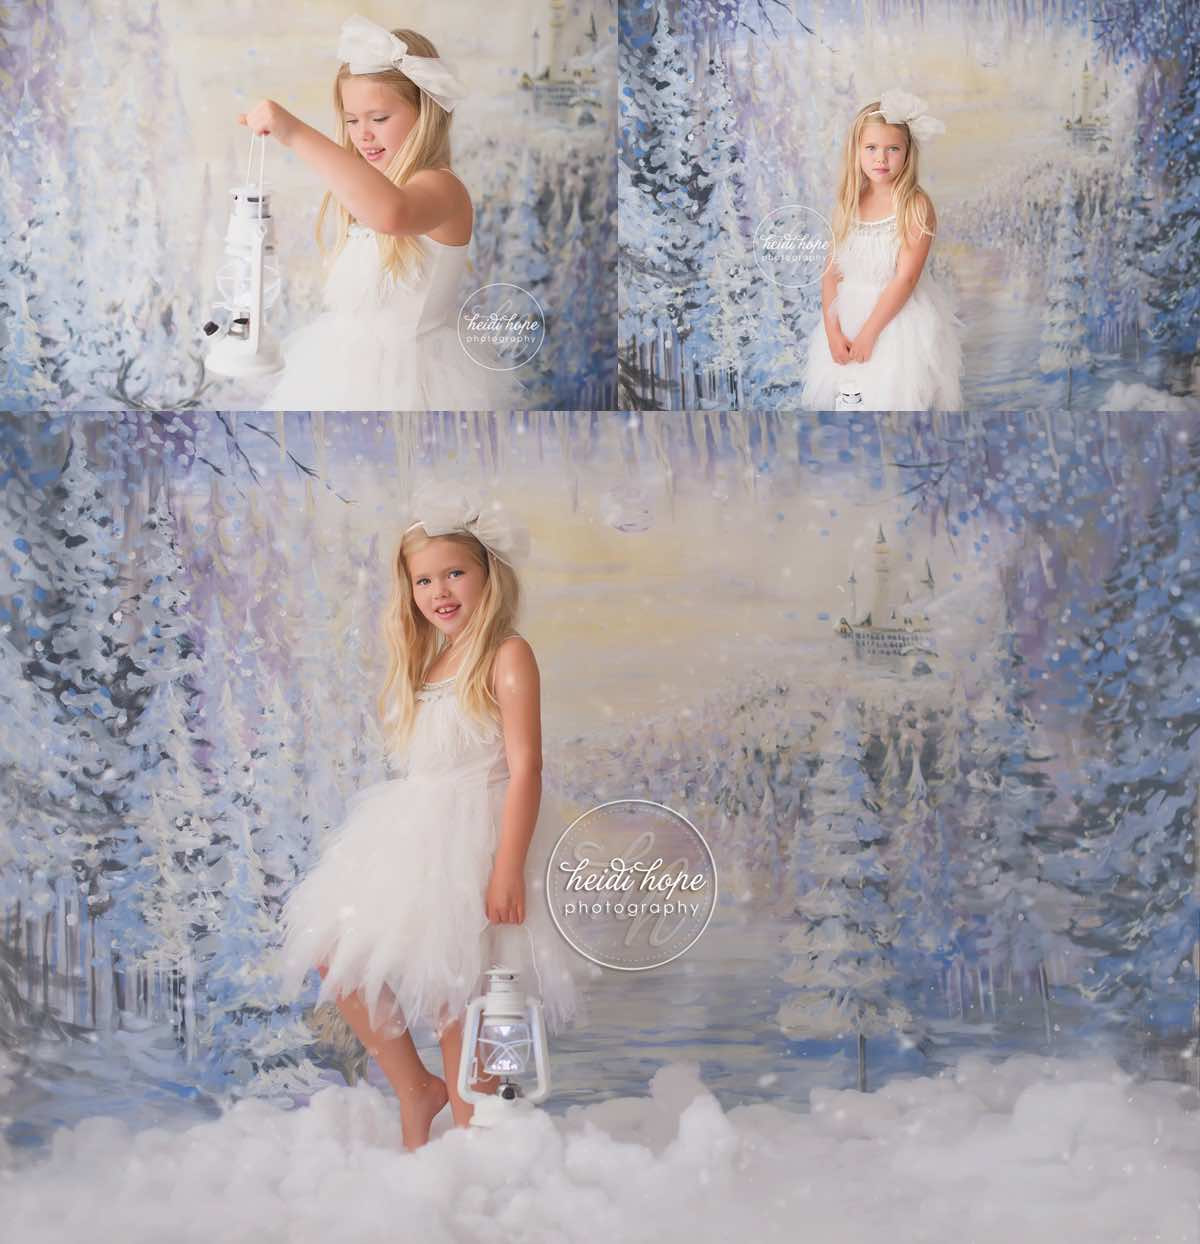 heidi hope backdrop frozen winter wonderland mini session with tutudumonde and snow 1